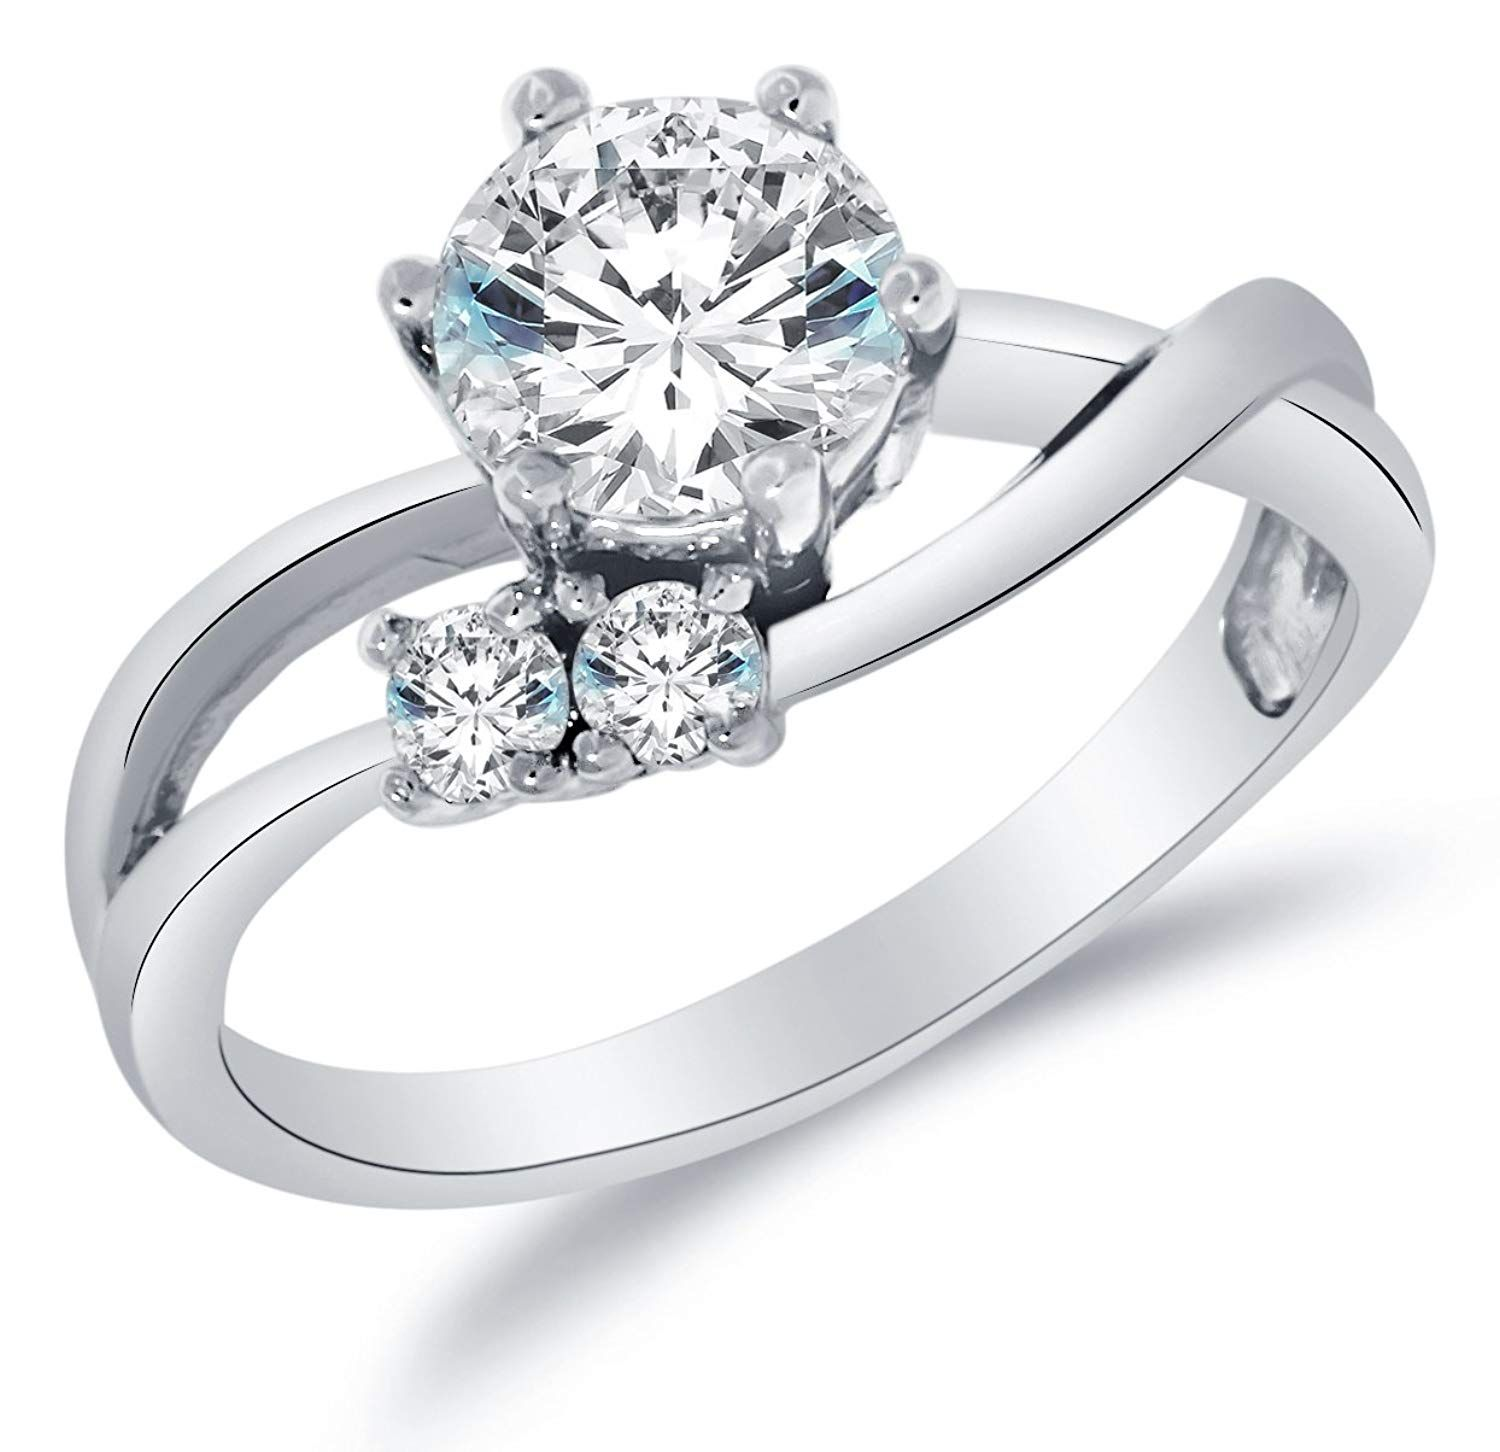 Solid 14k White Gold Highest Quality CZ Cubic Zirconia